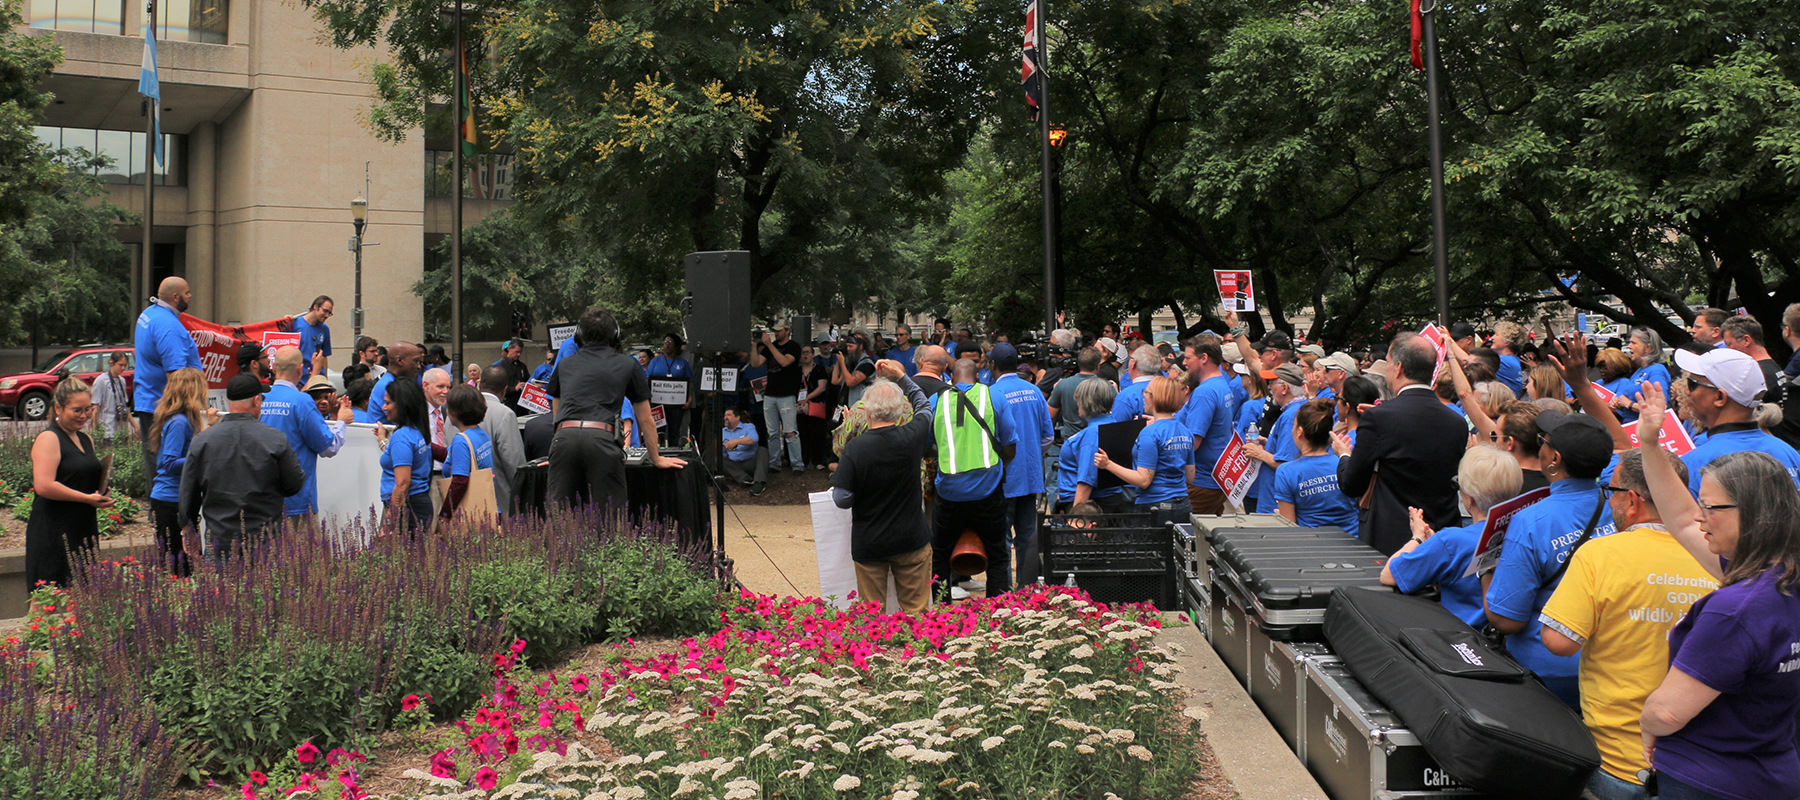 A crowd of about 250 attended a rally to end cash bail Wednesday in Louisville, Ky. Following the rally, more than 50 people incarcerated because they lacked the money to post bail were released from the Main Jail in downtown Louisville. (Photo by Tammy Warren)